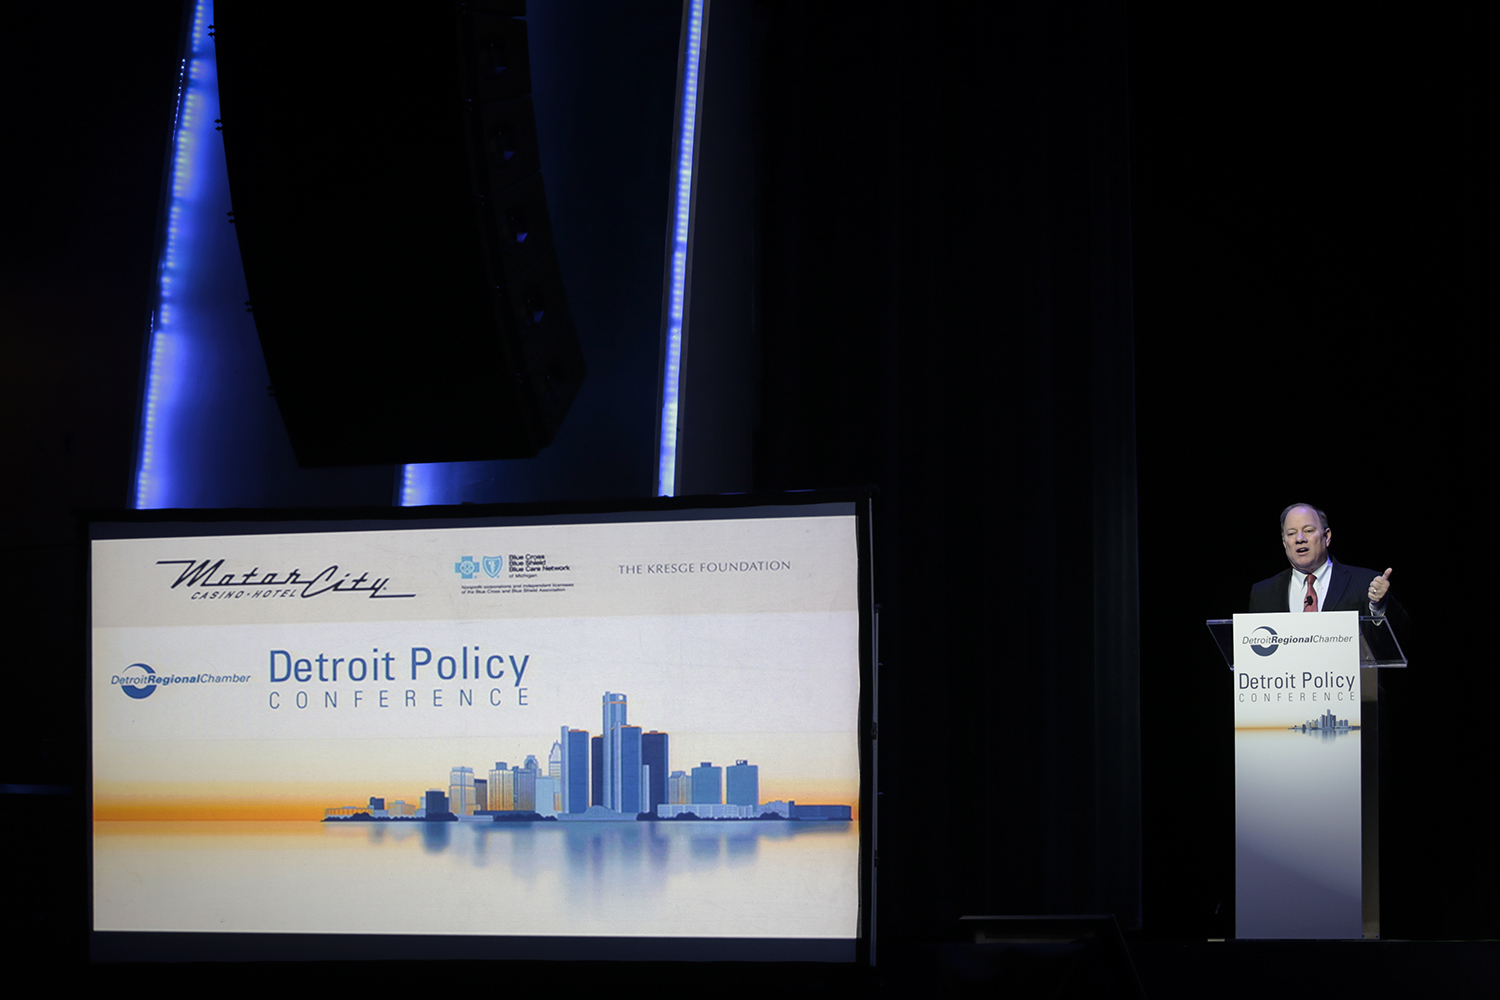 Mayor Mike Duggan speaks during the Detroit Policy Conference on Thursday, Feb. 26, 2015 at the Motor City Hotel and Casino in Detroit. Tim Galloway/Special to DFP